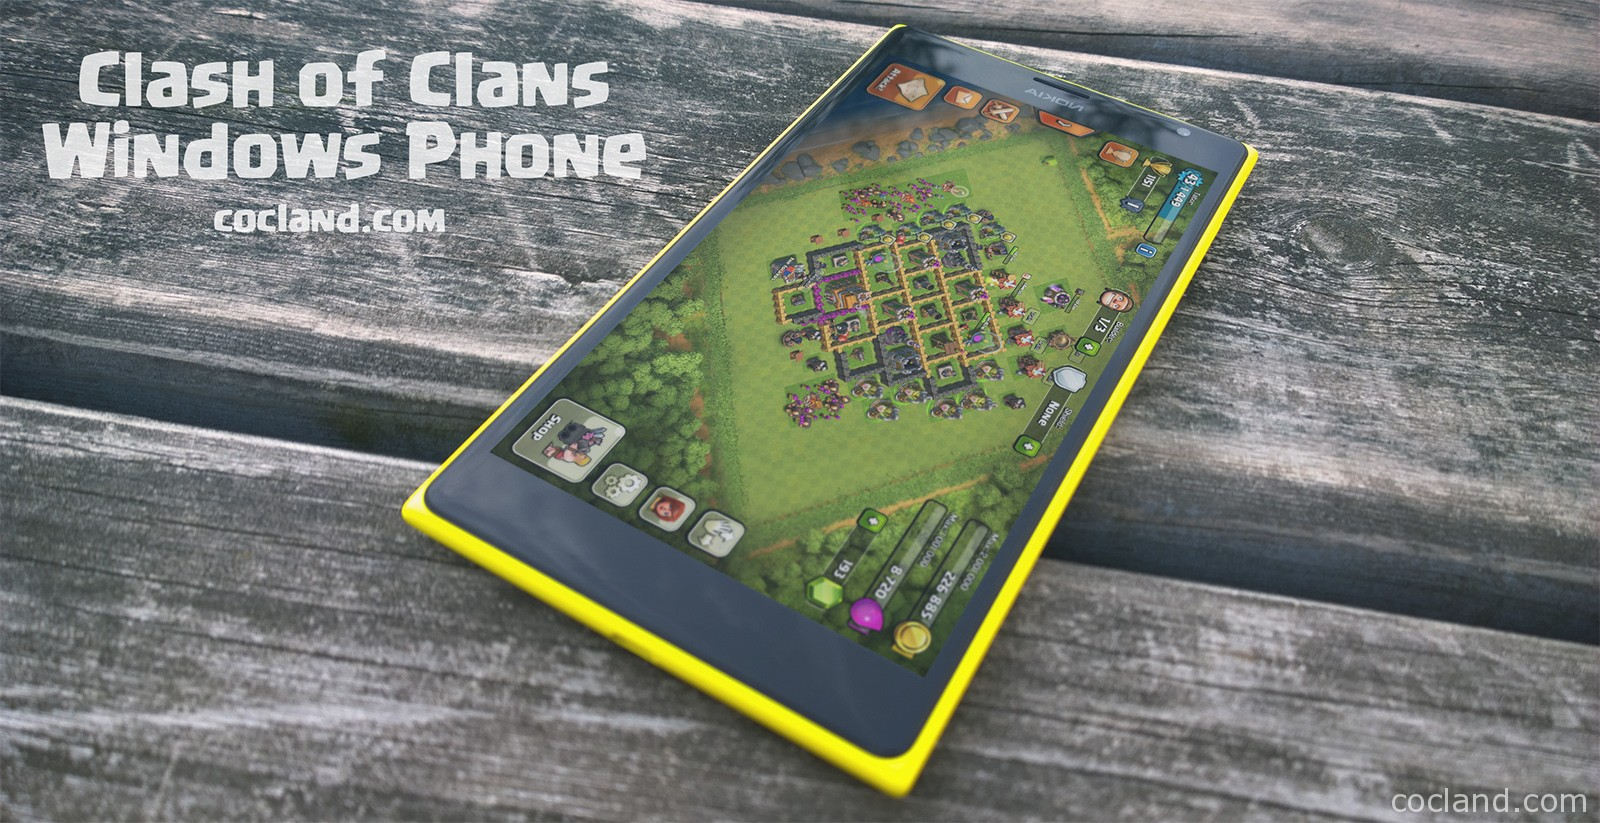 Clash of clans for pc download (windows 7/8/xp) computer.